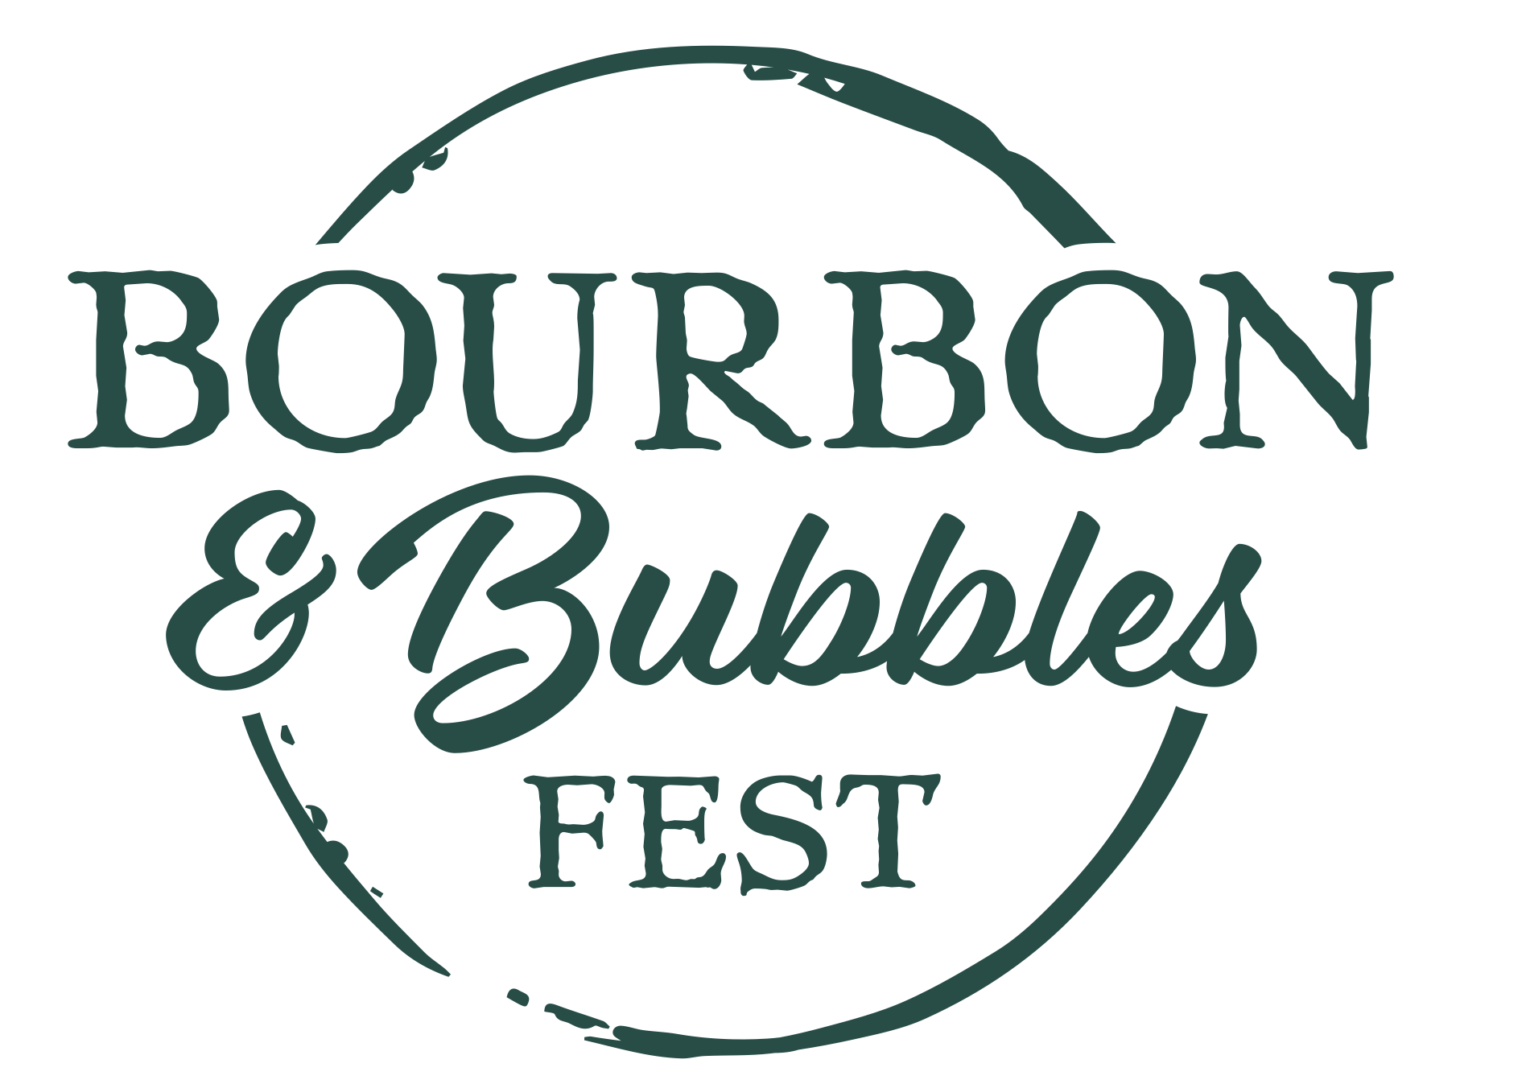 Bourbon and Bubbles Fest is a Franklin, TN event where attendees can sample Bourbon, Spirits, Wine, and all kinds of Bubbles including Sparkling Wine, Prosecco, Beer, and even Seltzers. The event also features live music and delicious food from area restaurants. Must be 21+ to attend!